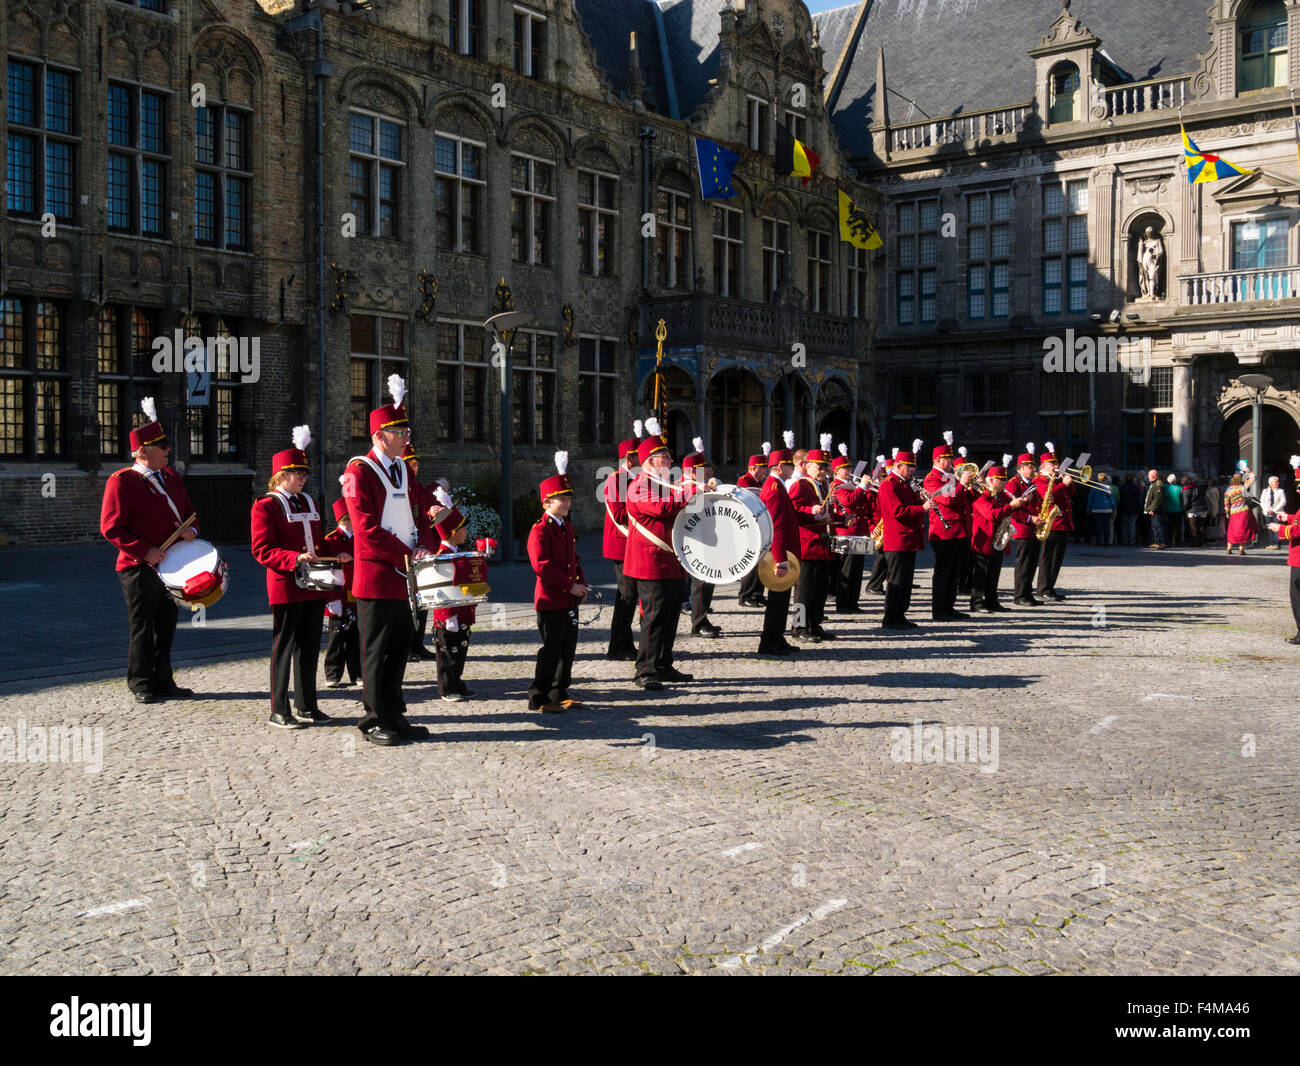 St Cecilia Kon Harmonie Band in red uniforms entertaining visitors Grote Markt market square Veurne West Flanders - Stock Image